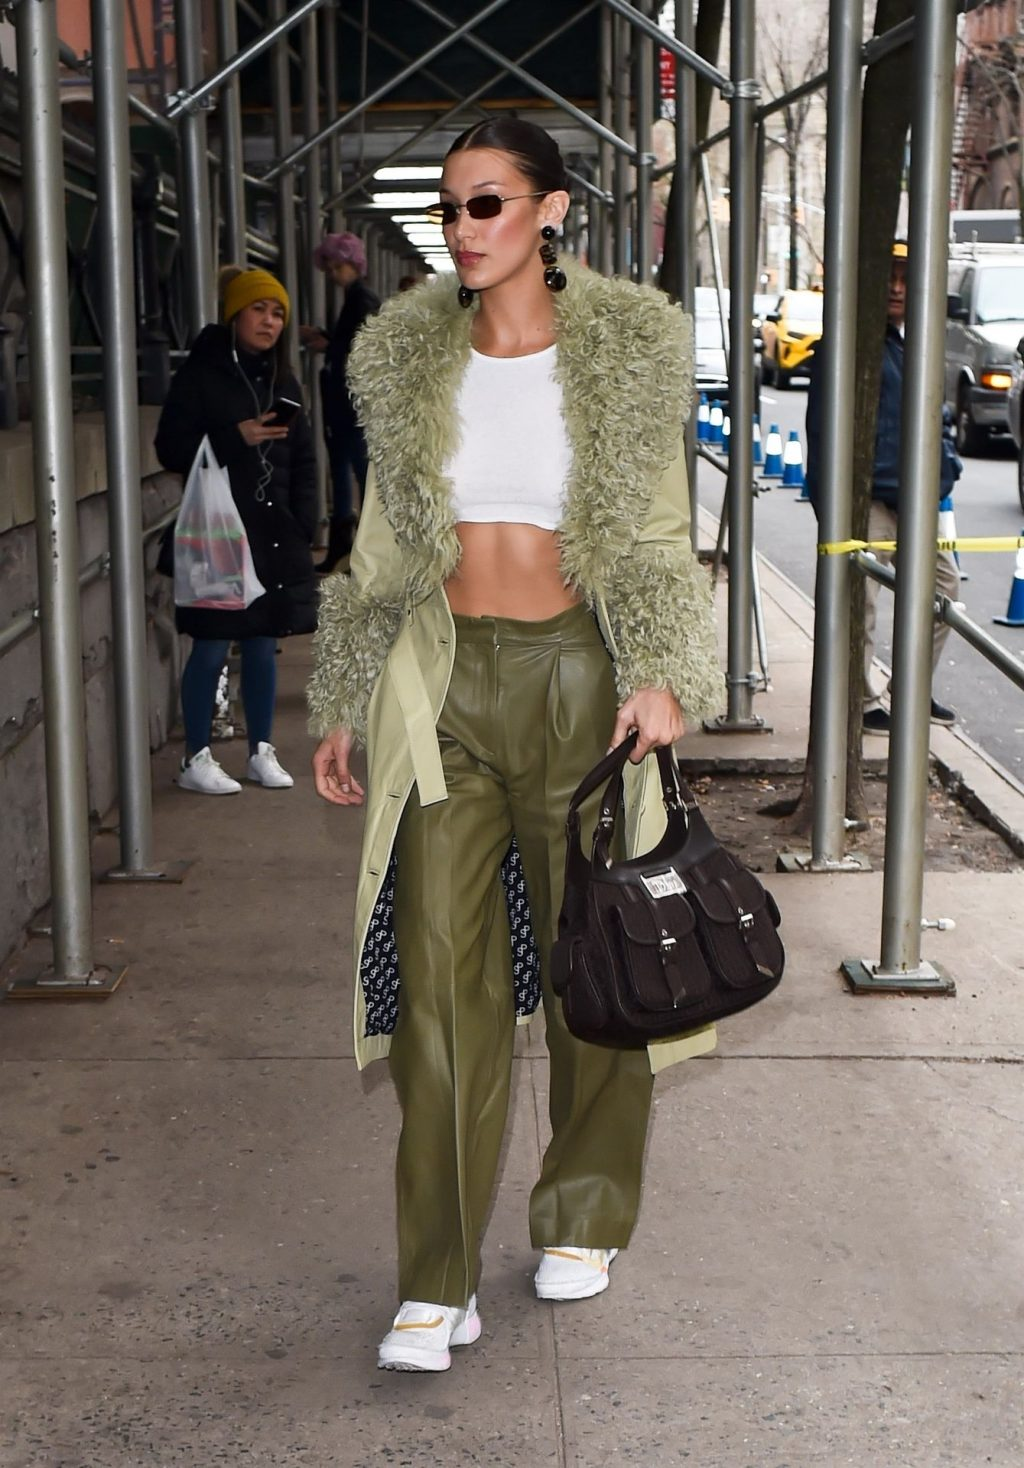 Bella Hadid See through The Fappening Blog 6 1 1024x1468 - Braless Bella Hadid Arrives at the Park Avenue Armory for the Marc Jacobs Fashion Show (59 Photos)